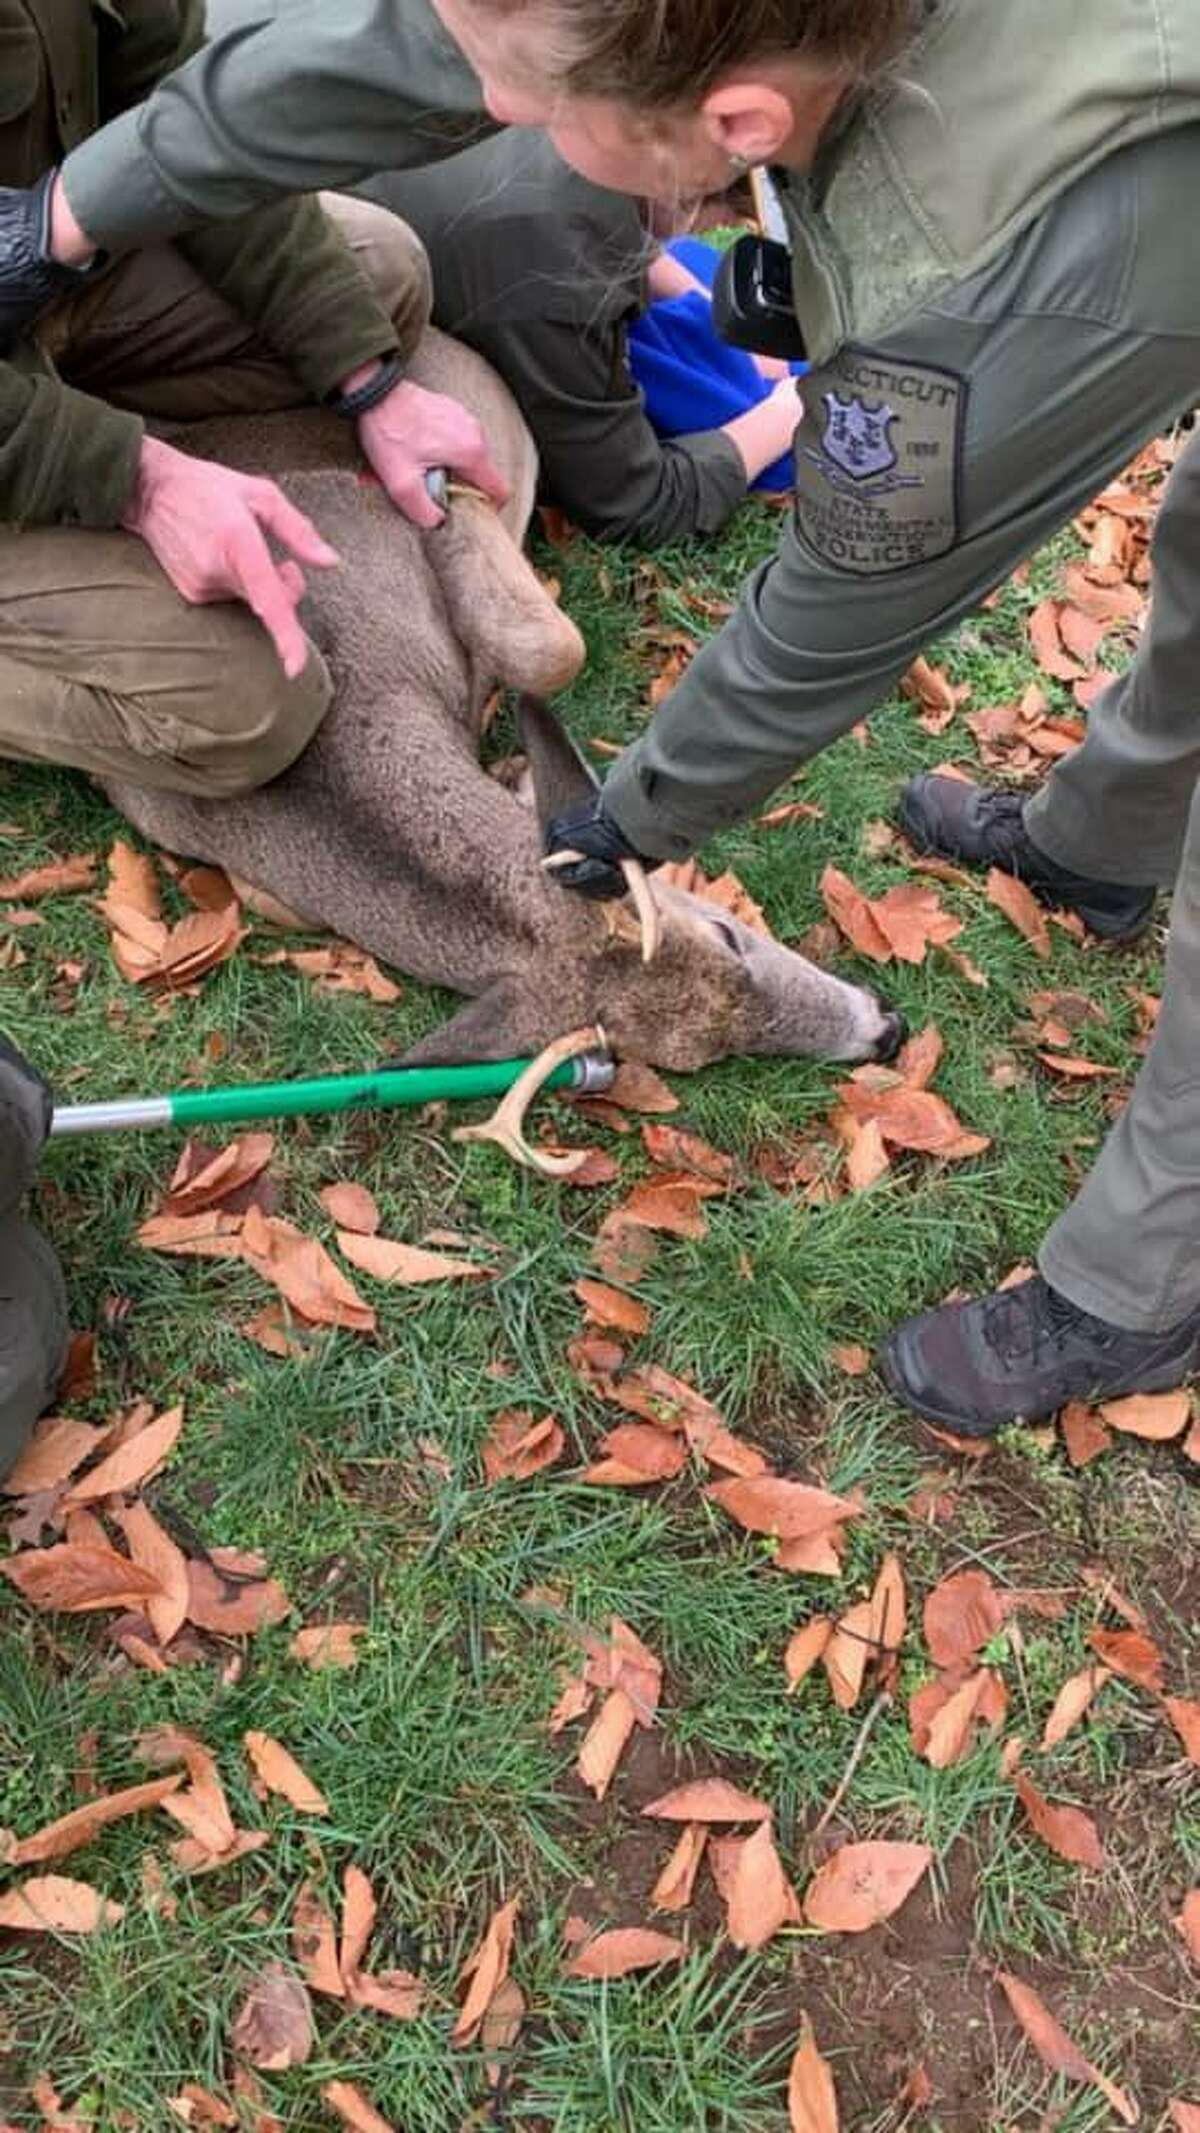 Officers and civilians help a deer tangled in netting in Manchester, Conn., on Sunday, Nov. 1, 2020.